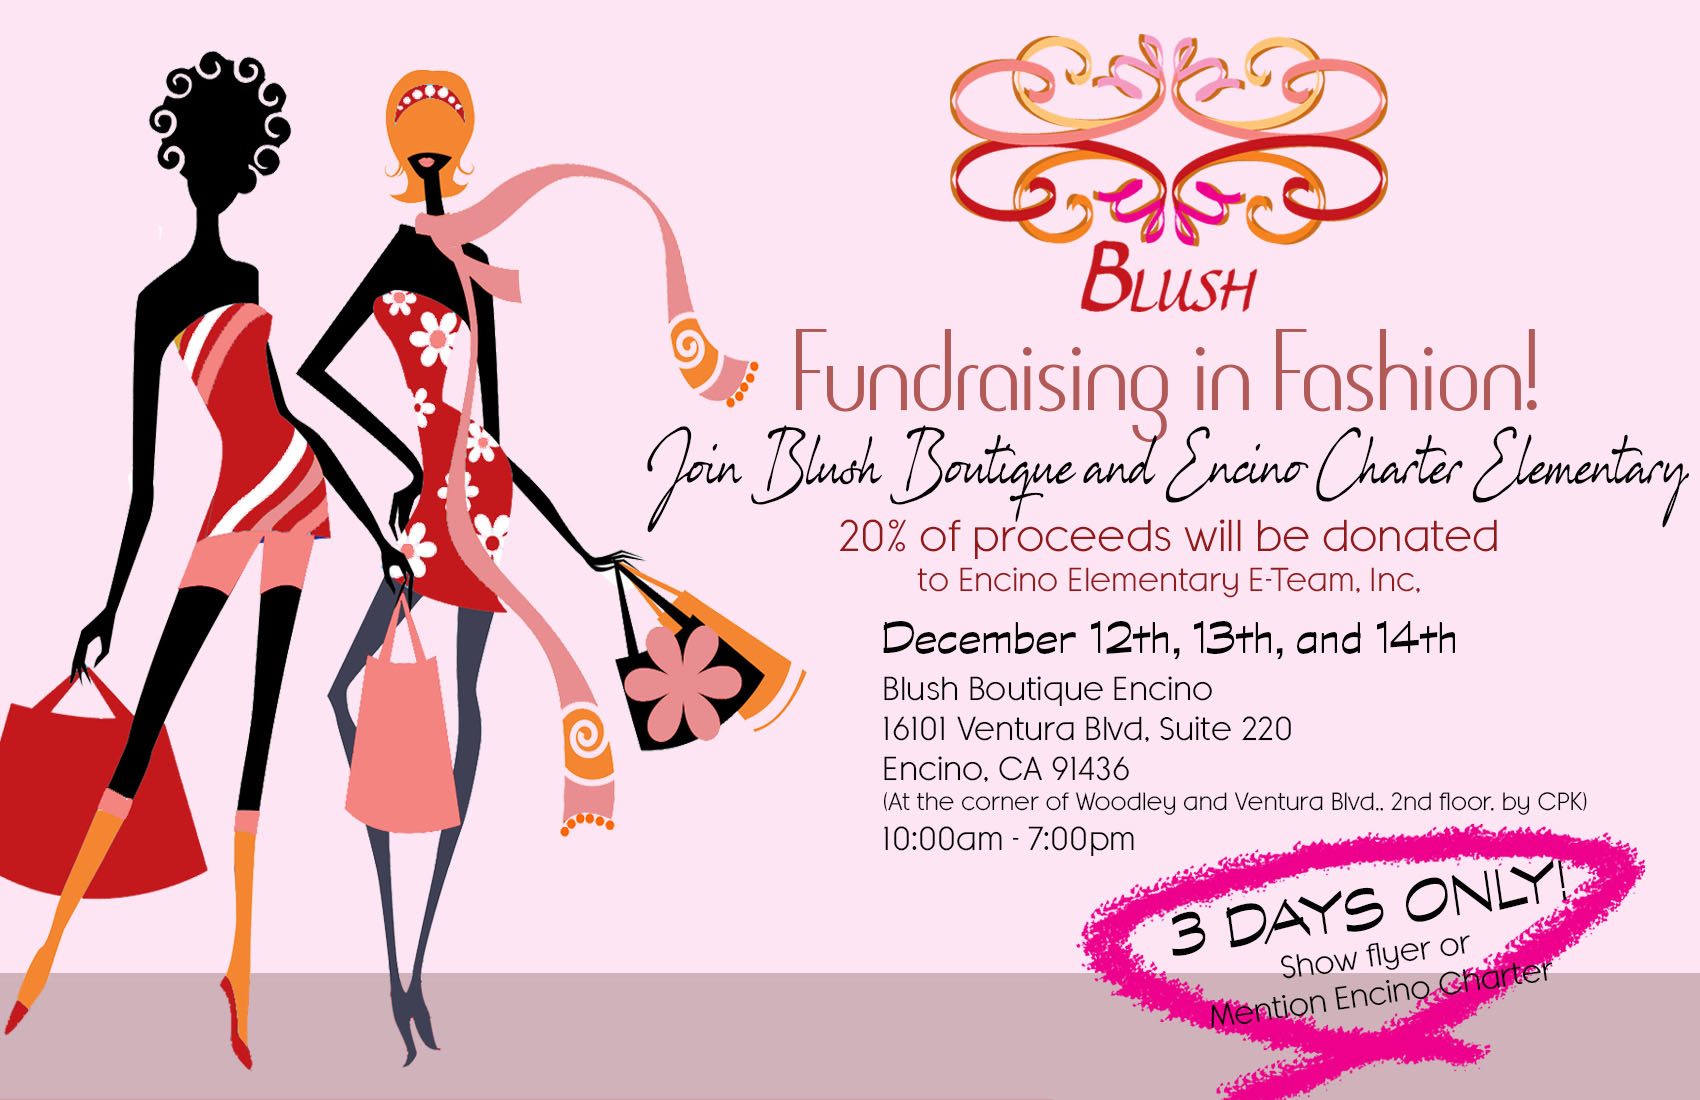 BLUSH BOUTIQUE FUNDRAISER